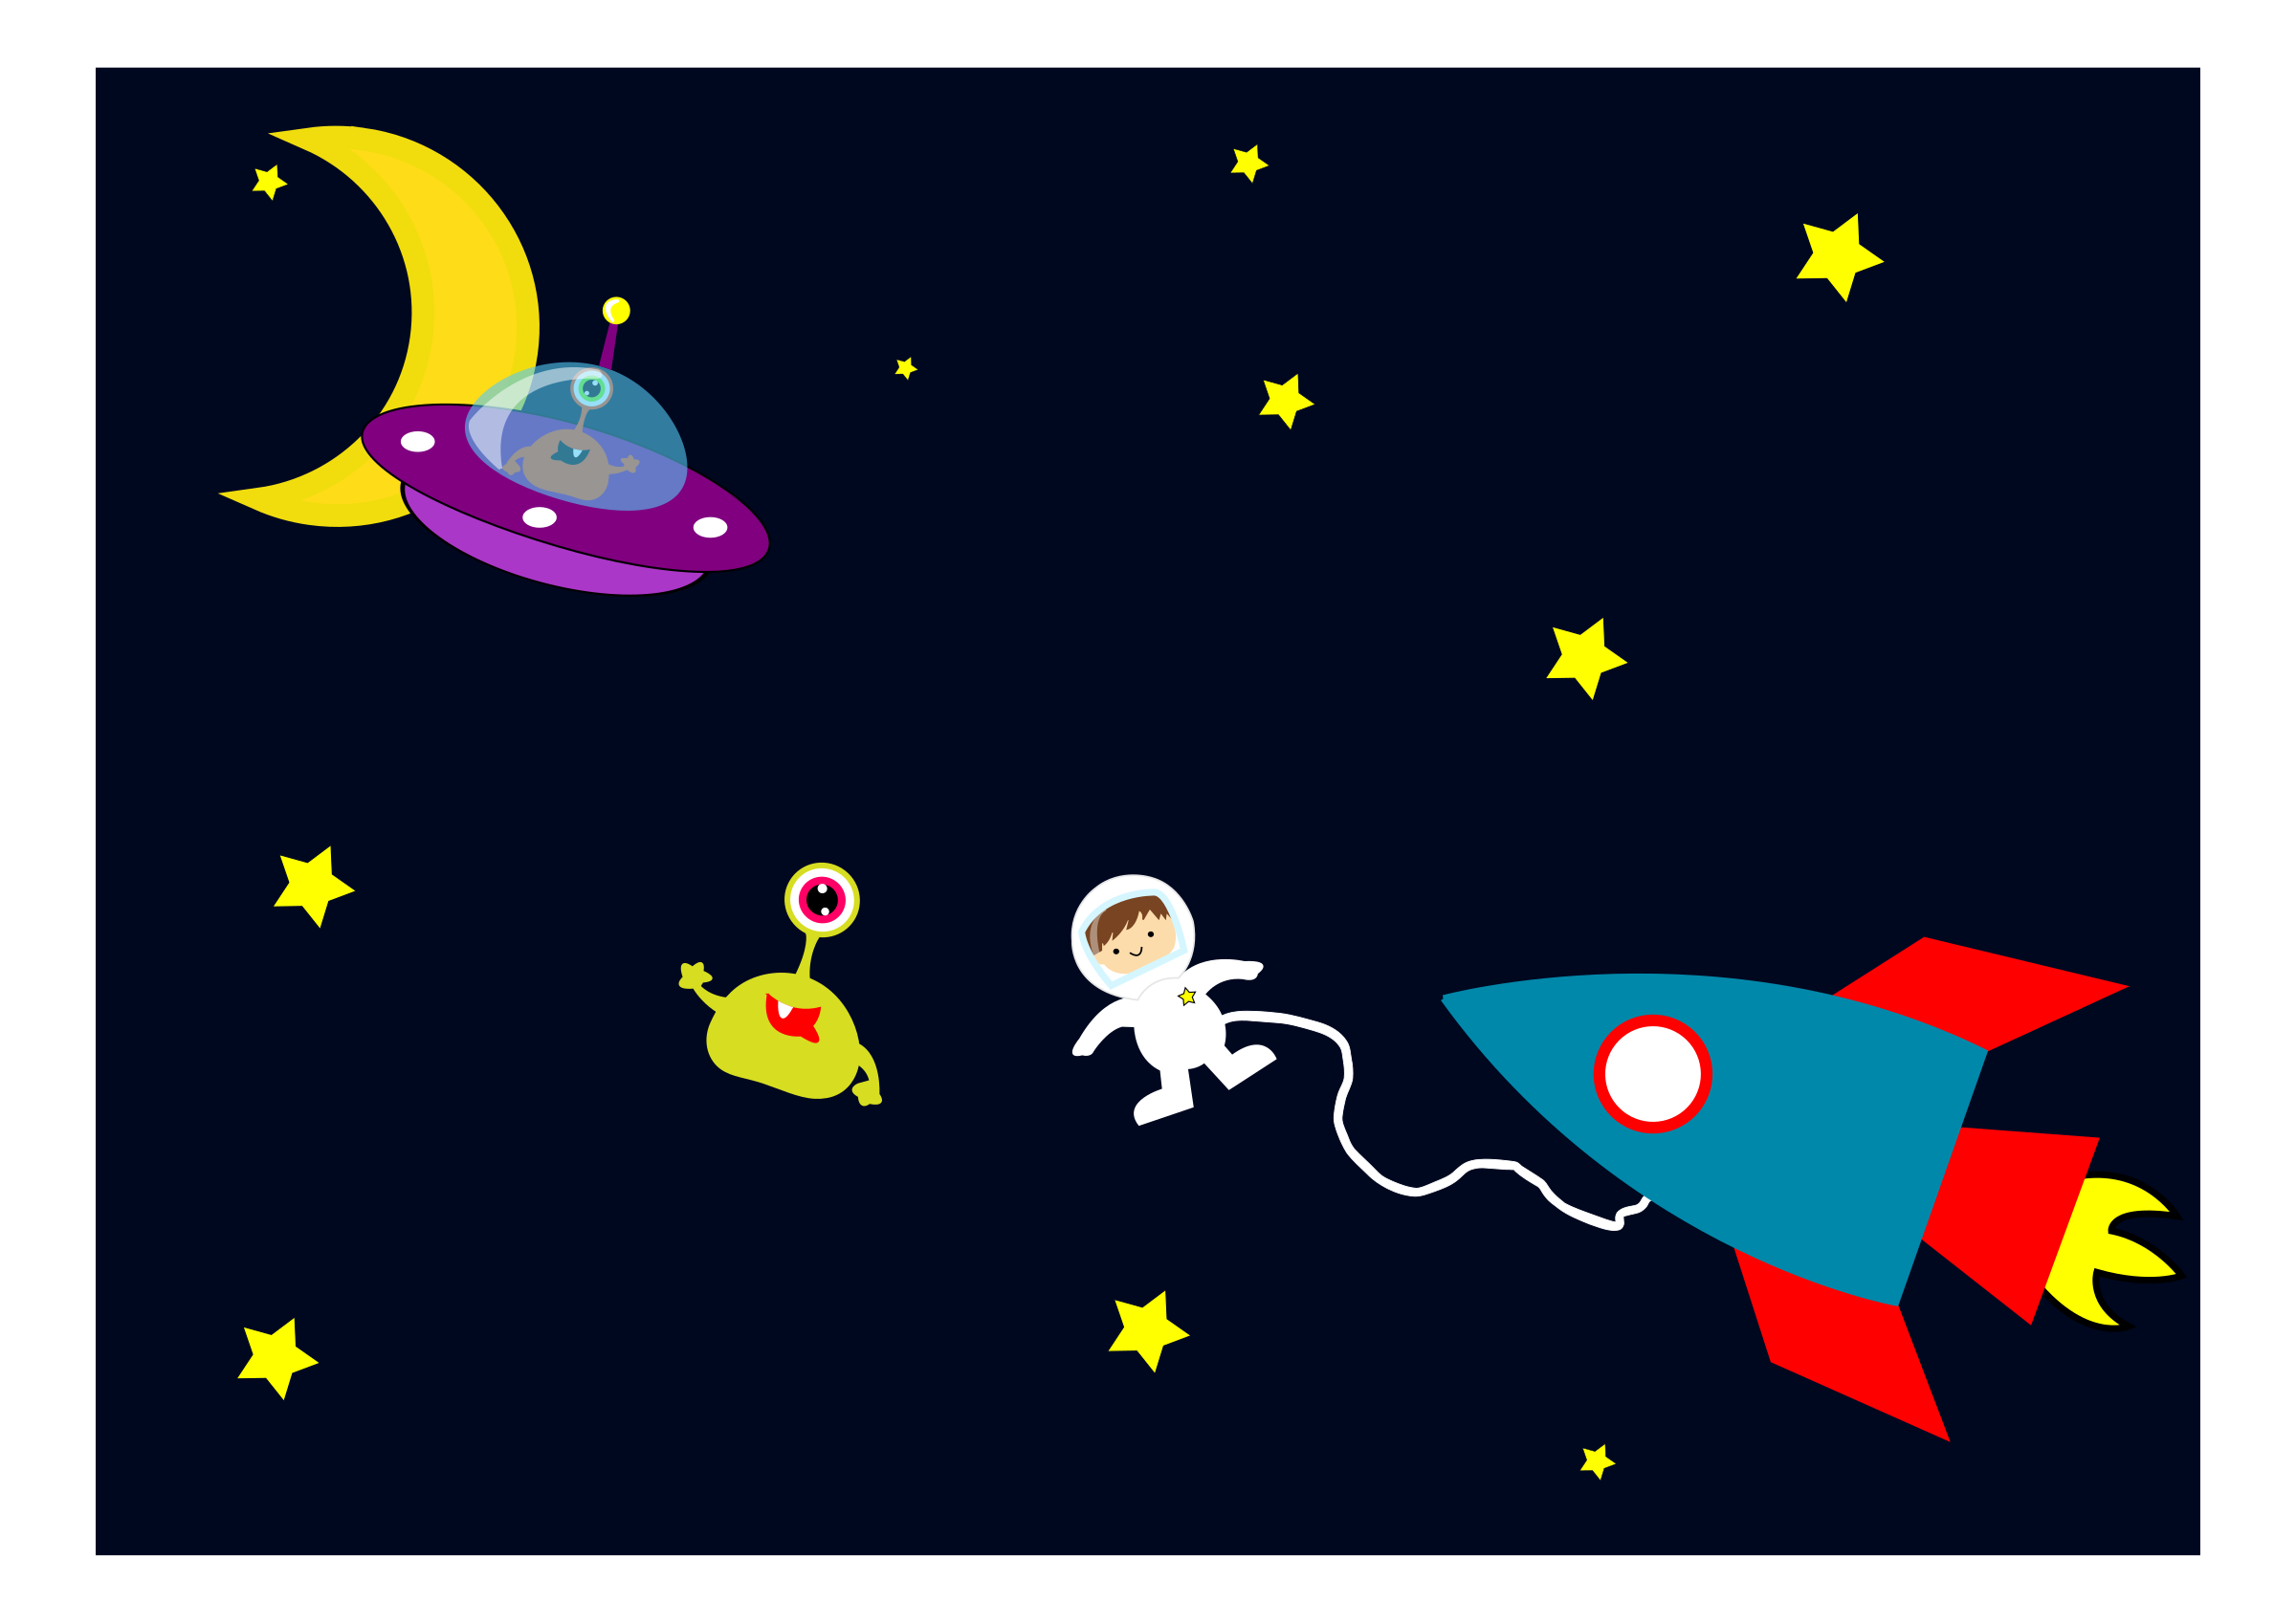 Astronaut encounters Aliens in space by agomjo